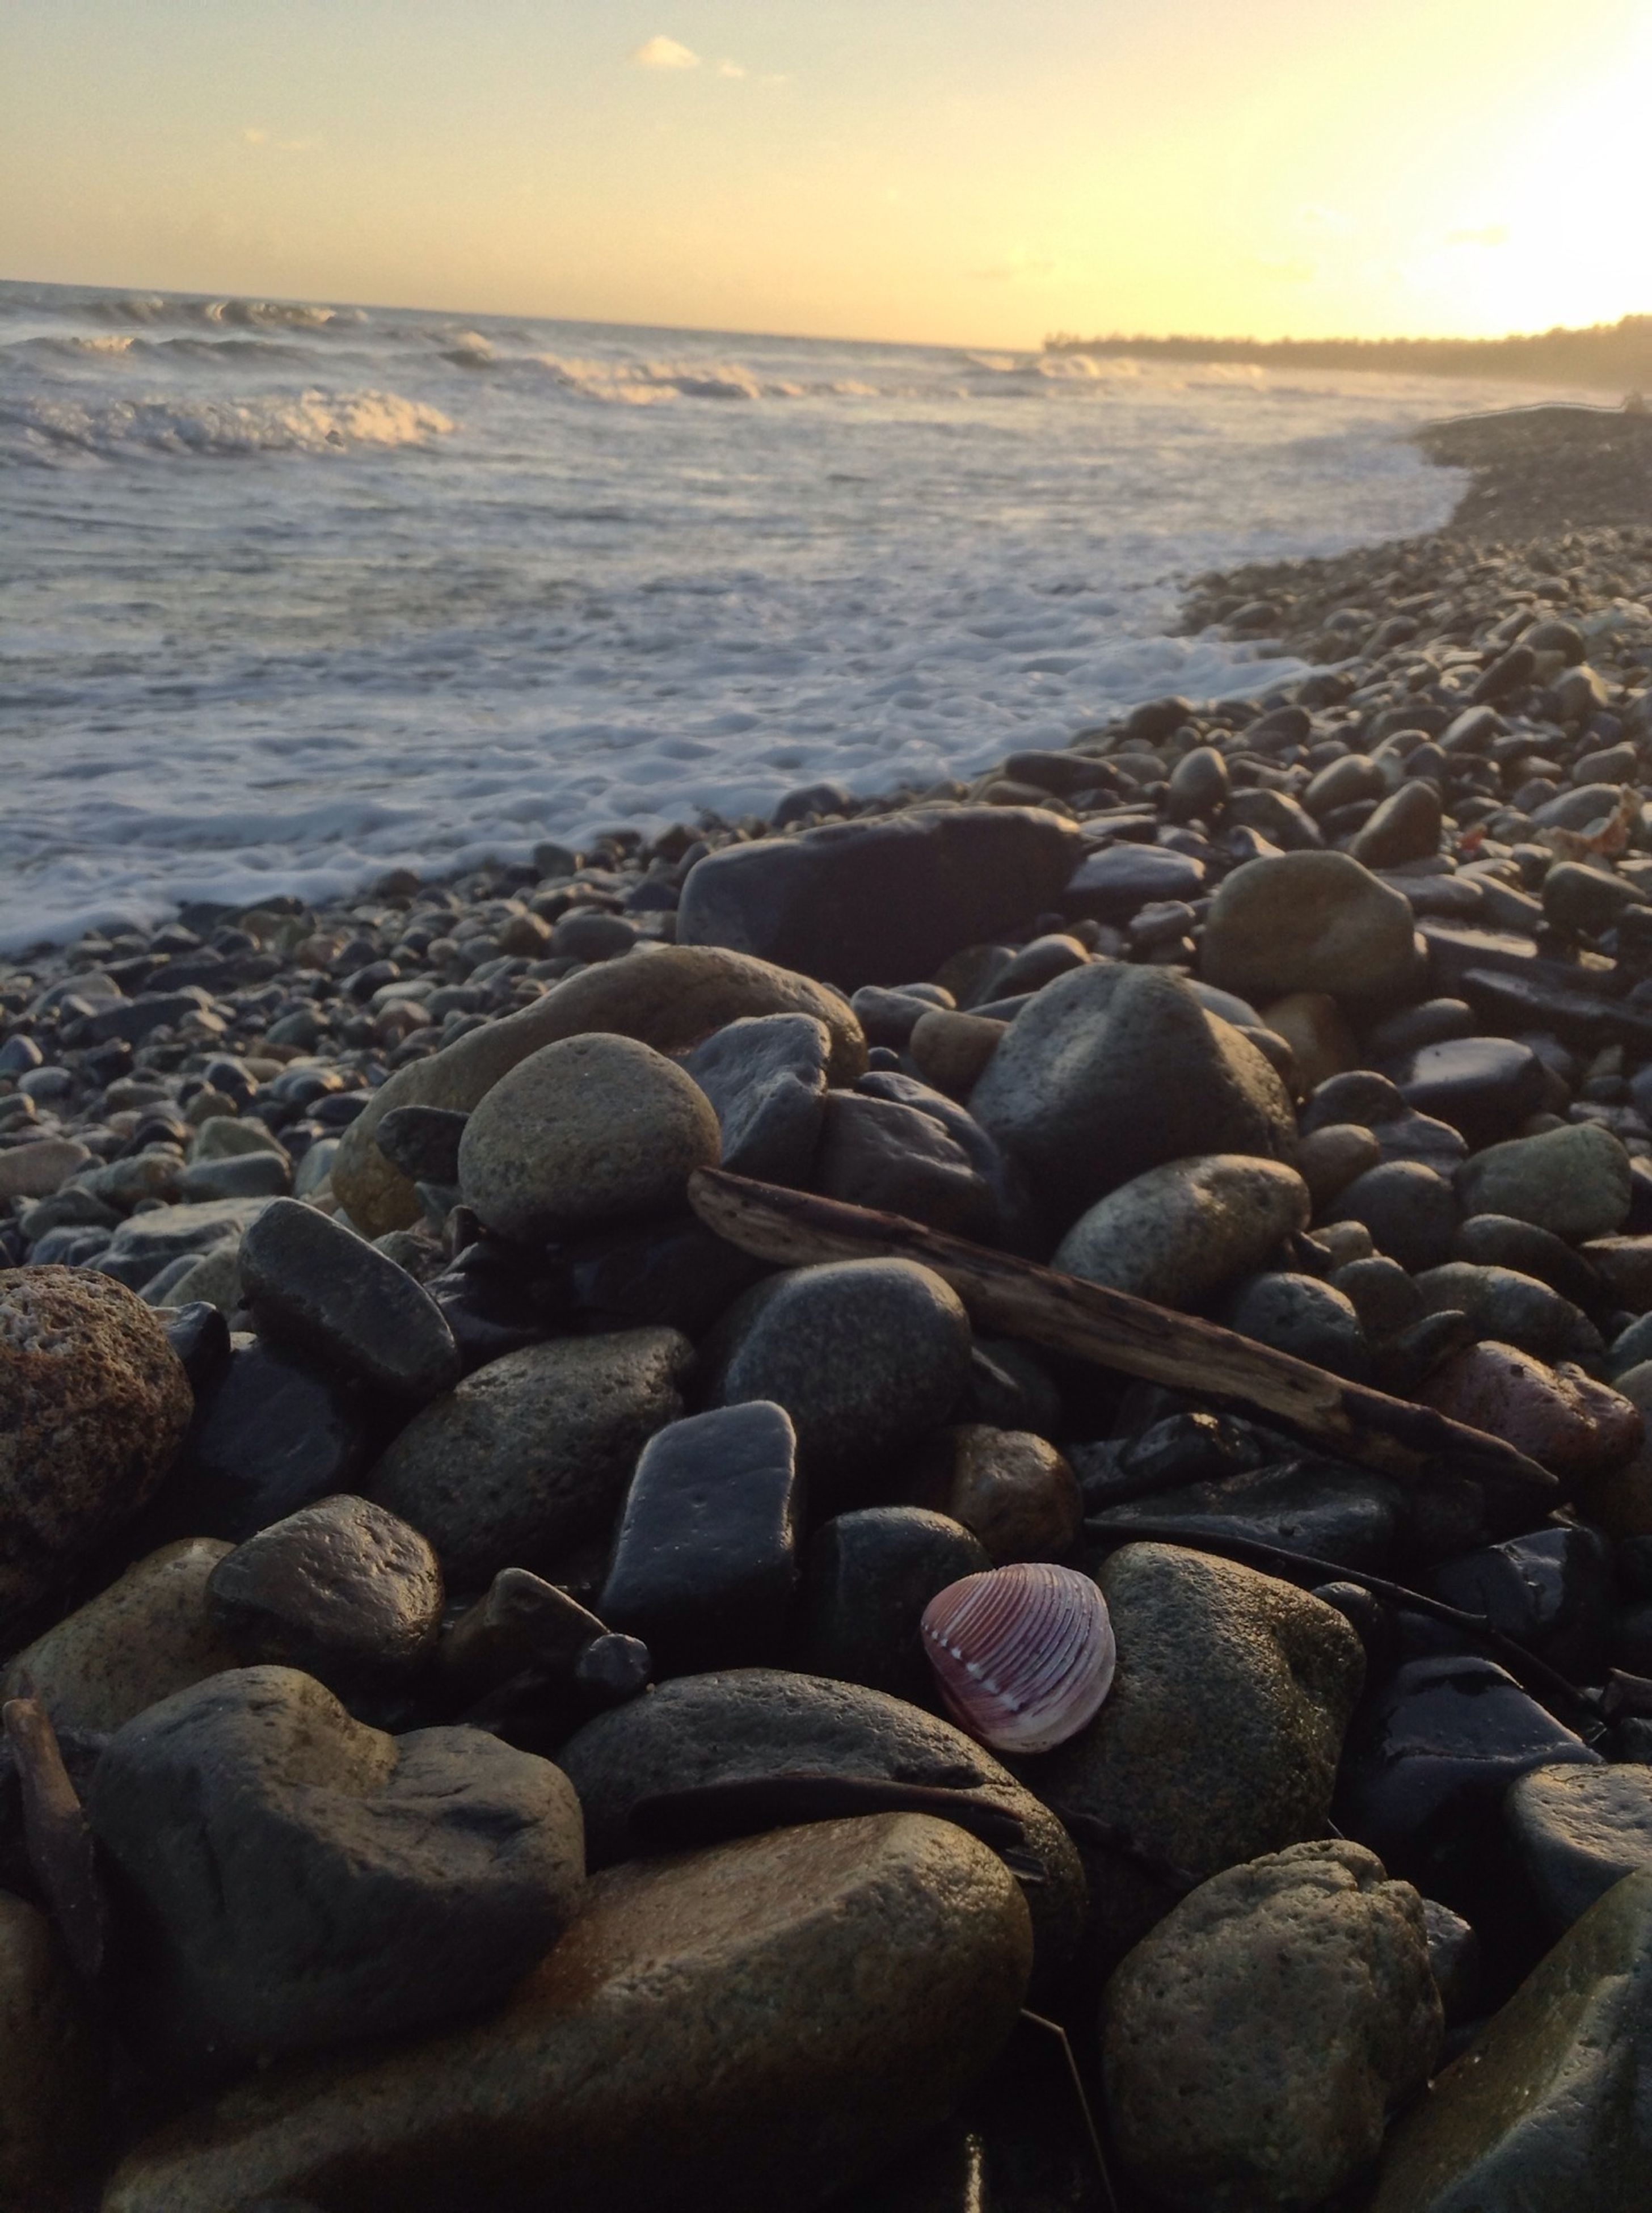 sea, beach, water, shore, horizon over water, pebble, scenics, tranquility, tranquil scene, beauty in nature, rock - object, stone - object, nature, sky, idyllic, stone, sunset, outdoors, wave, sunlight